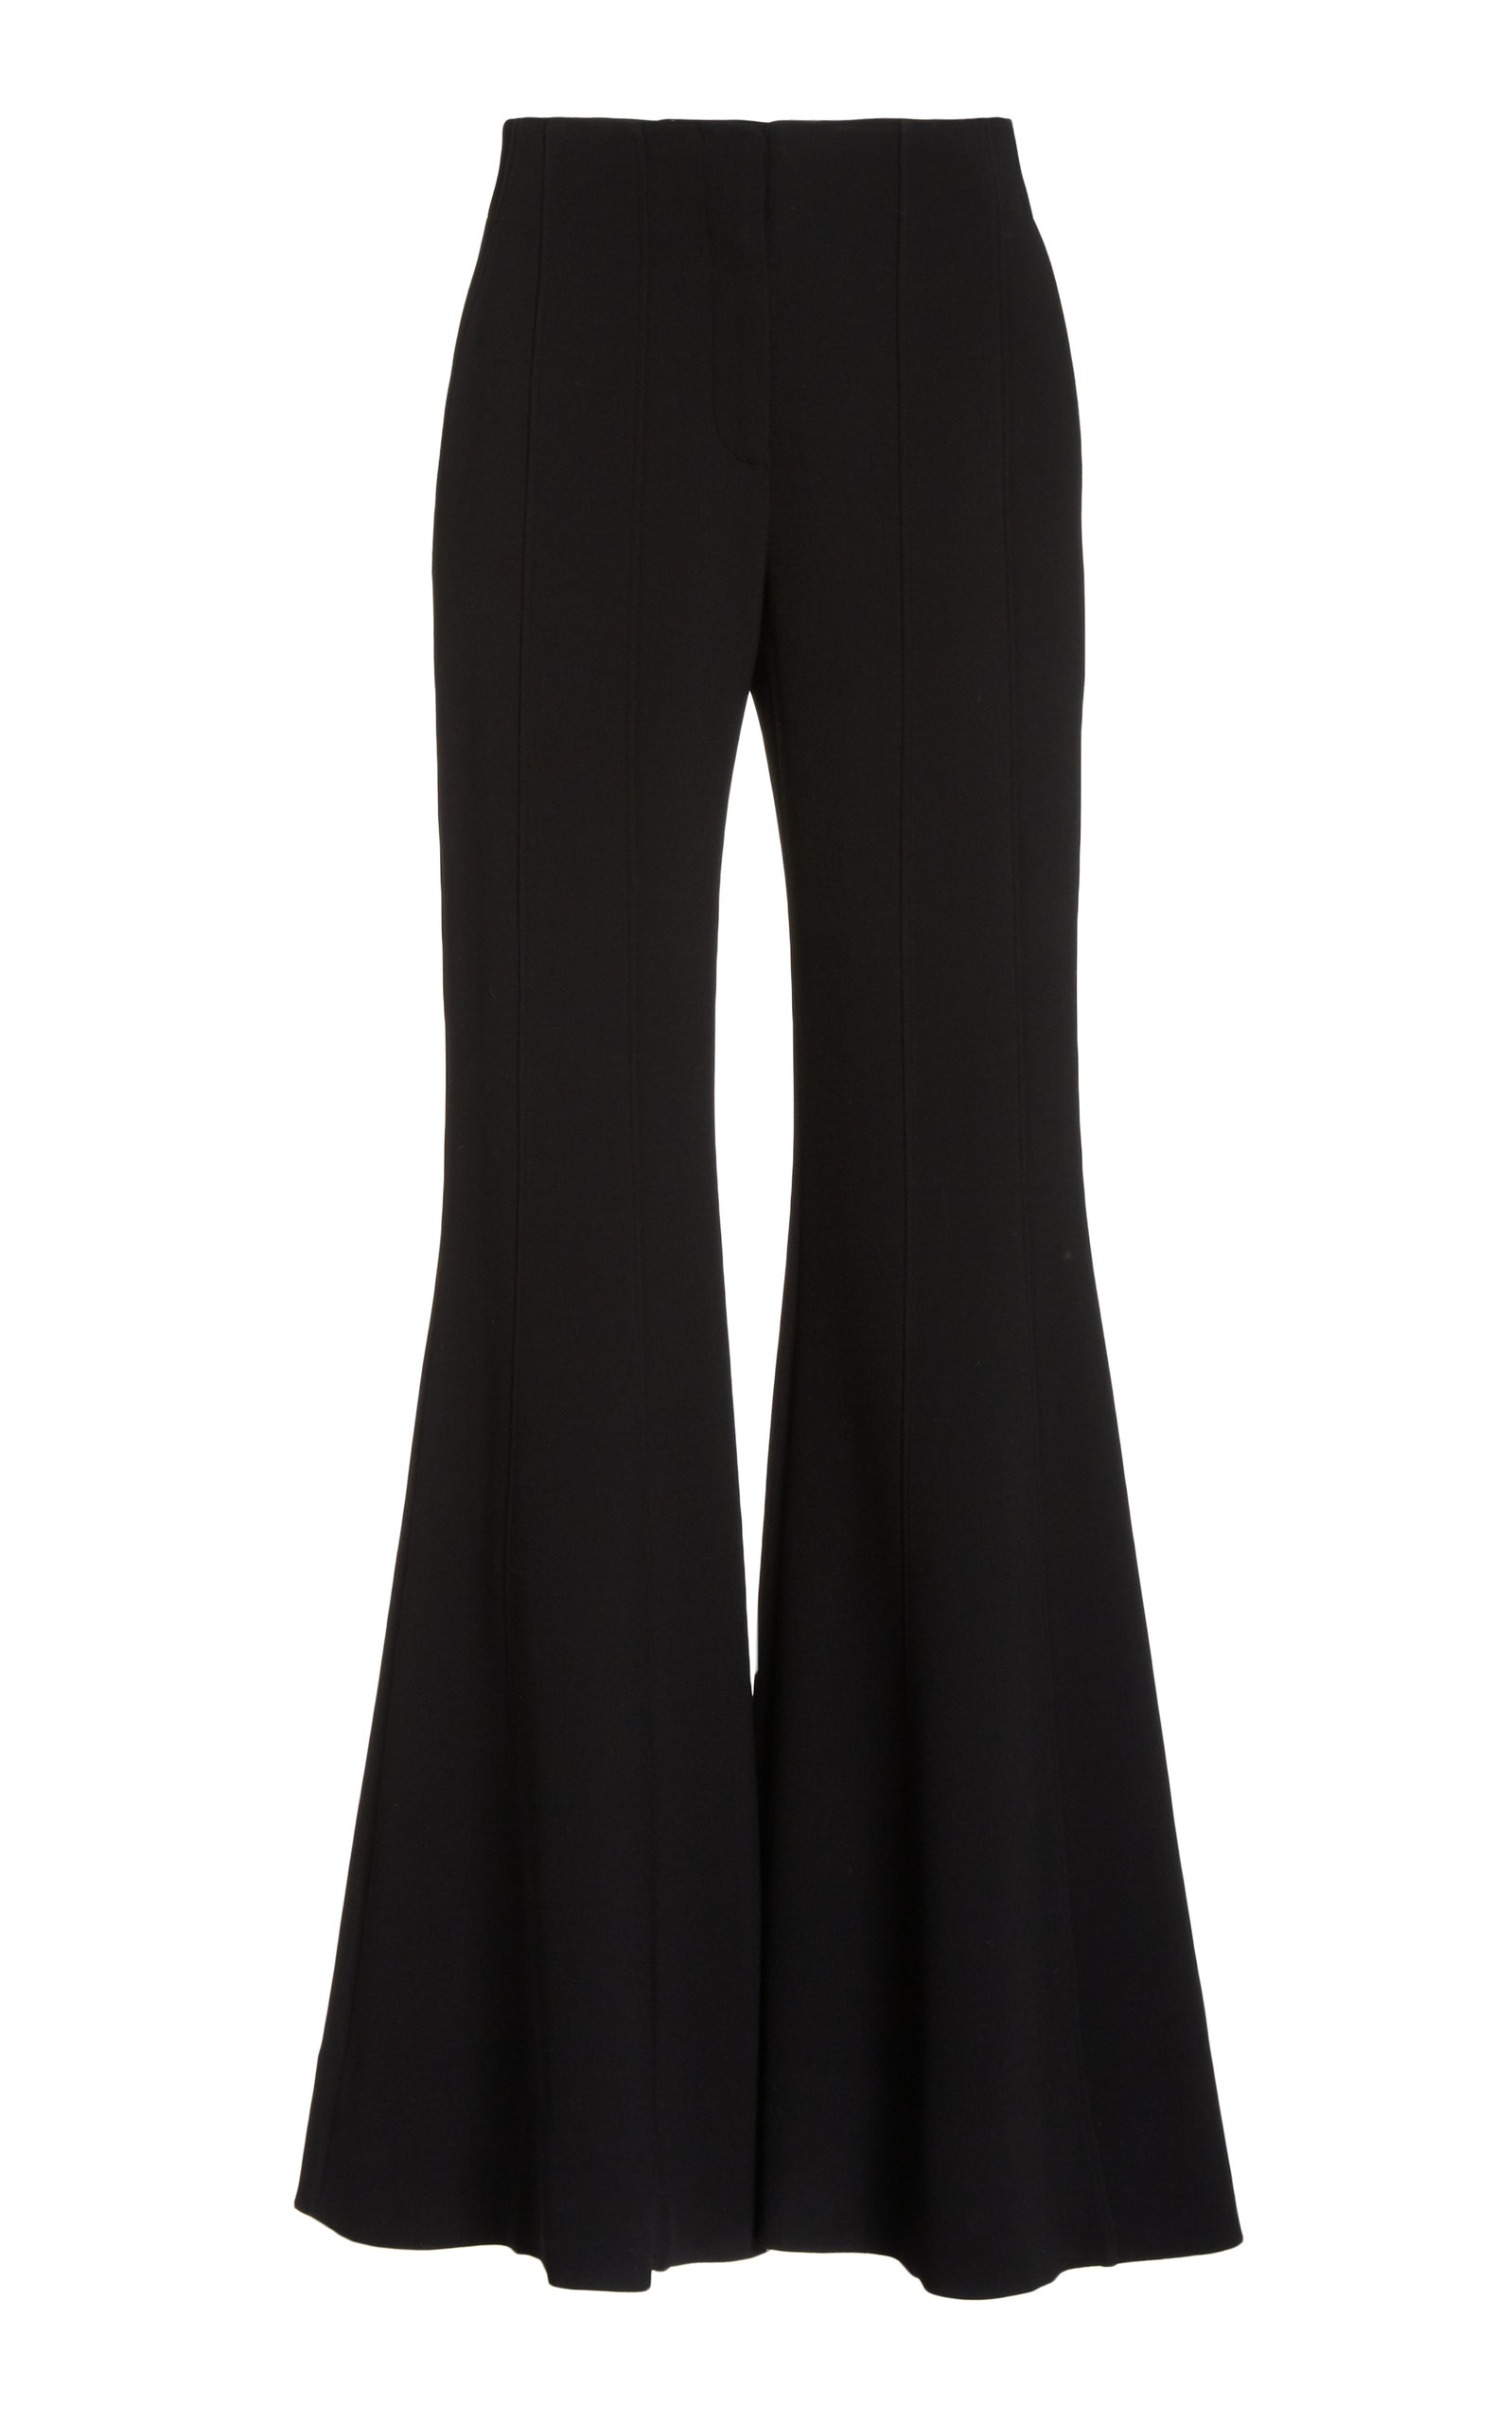 Proenza Schouler Textured Suiting Flared Pants In Black